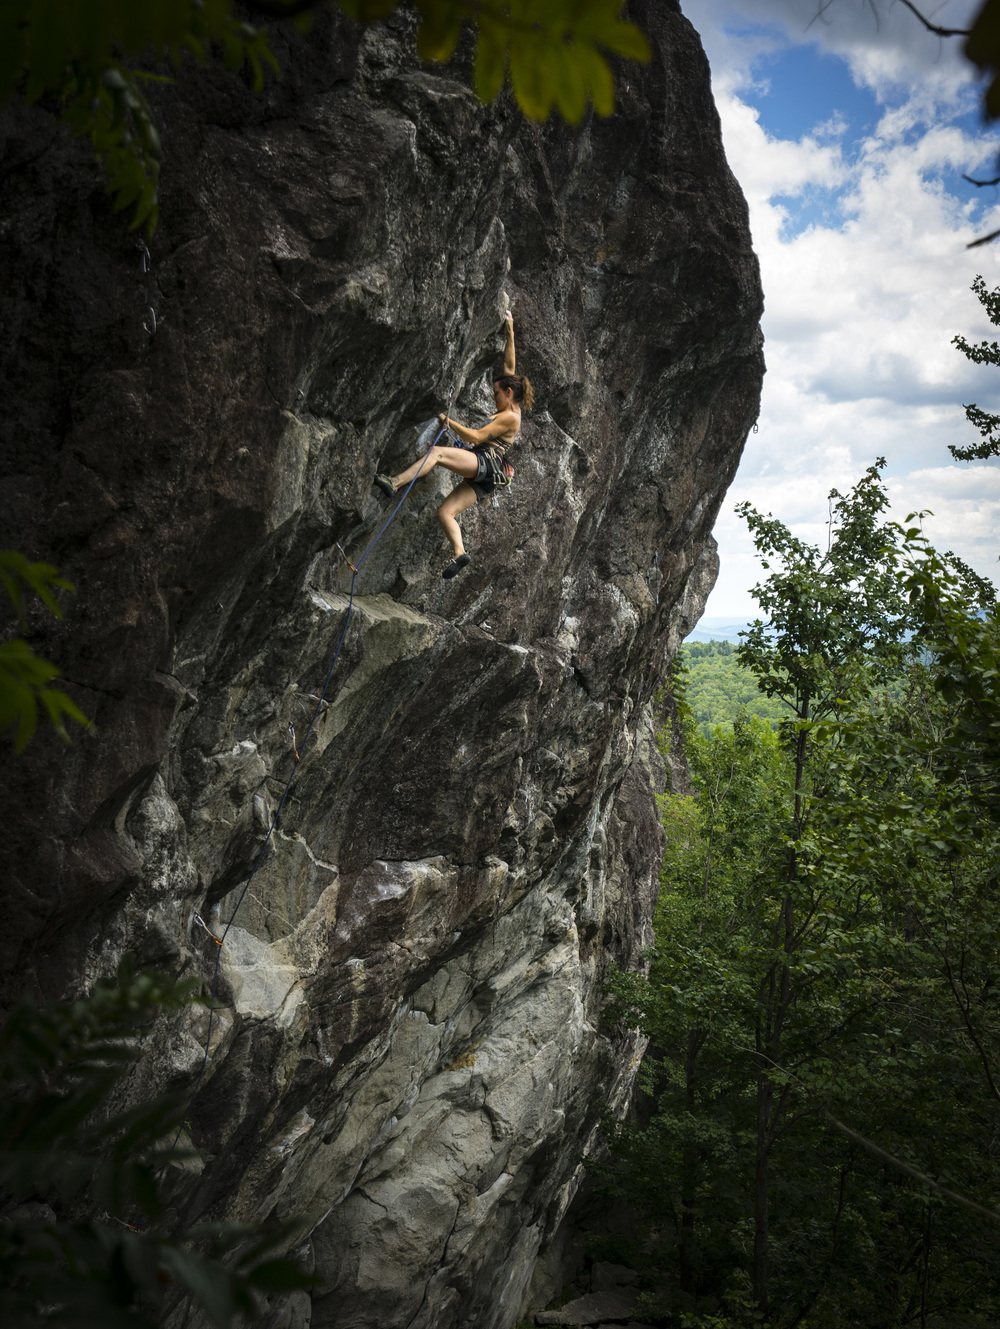 Jessica Pizzillo at Shag Crag